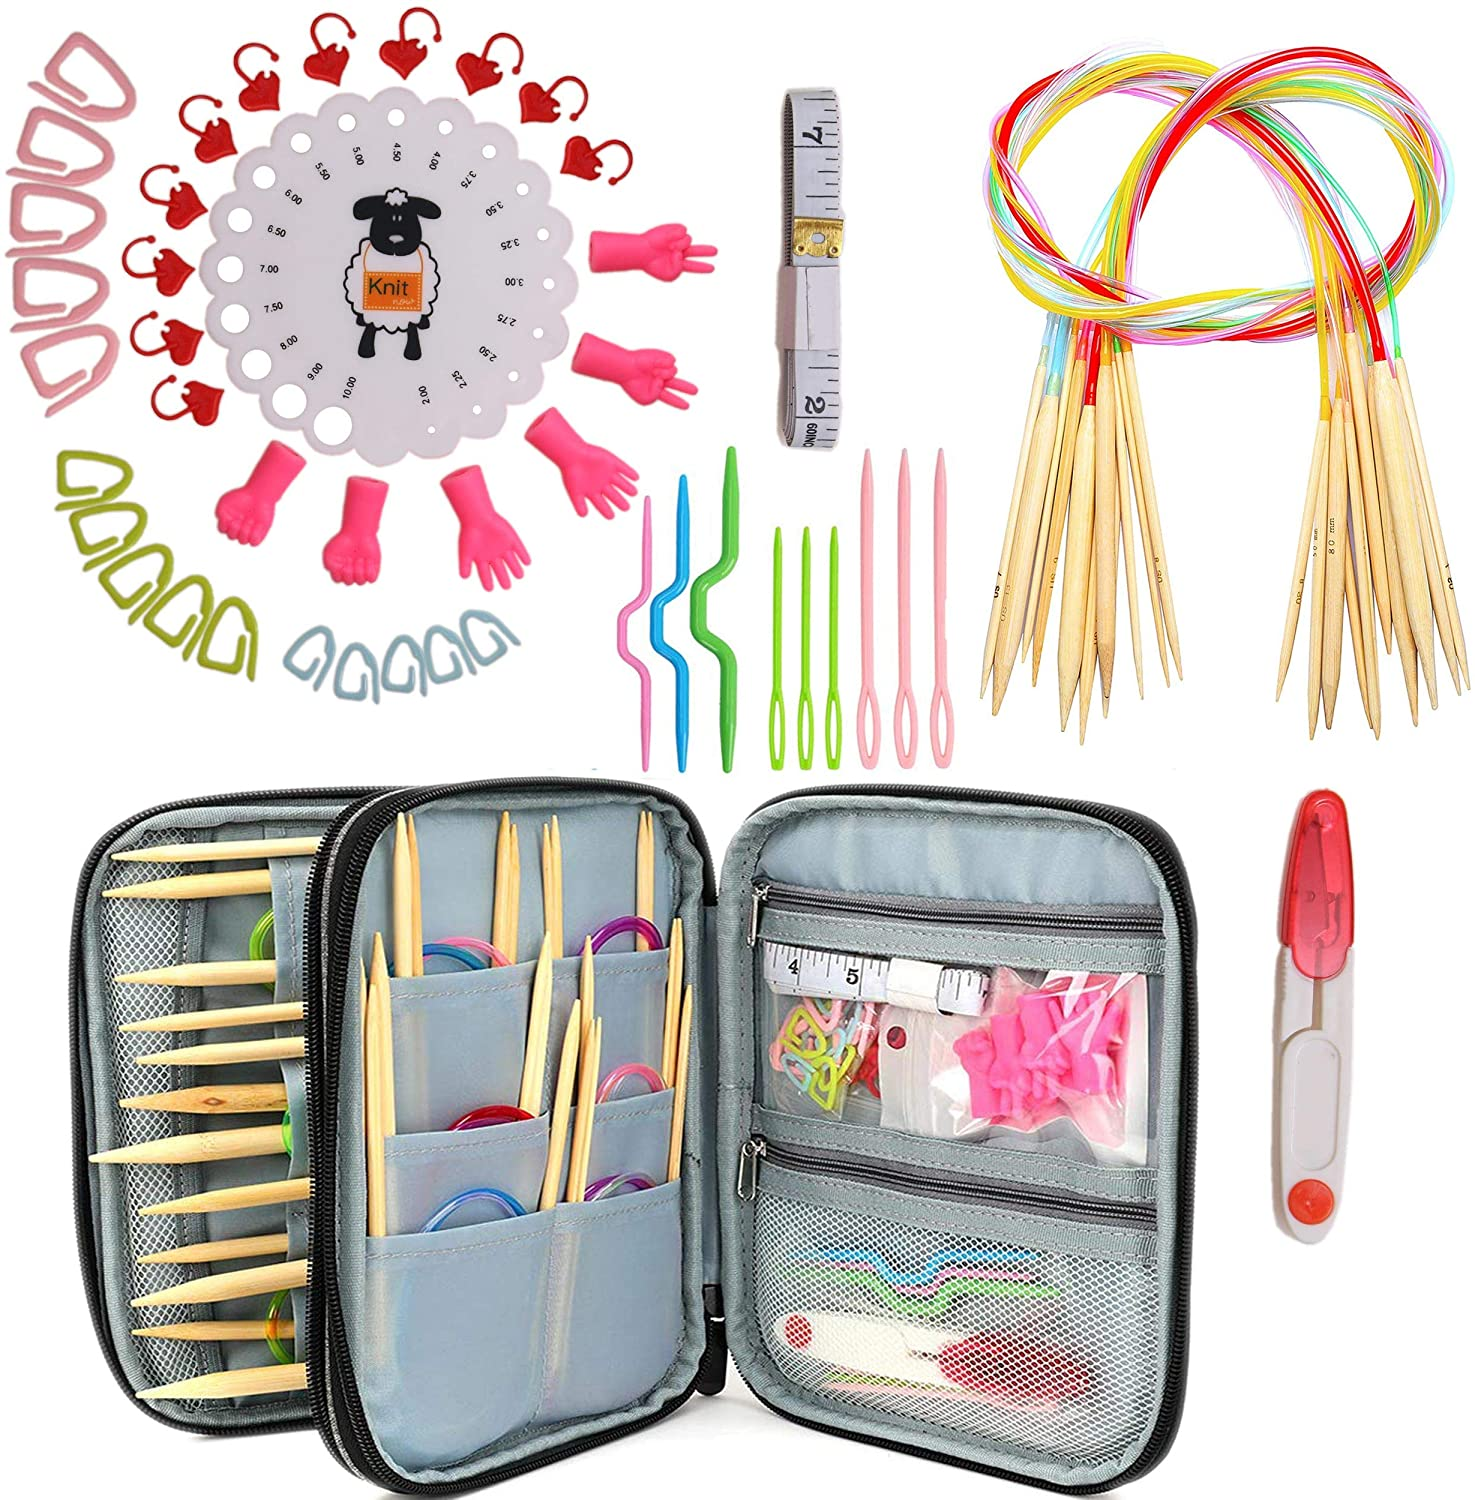 Akacraft Circular Knitting Needles Kit - Bamboo Needels in Portable Case, Contains All The Knitting & Crochet Accessories and Tools in one Set